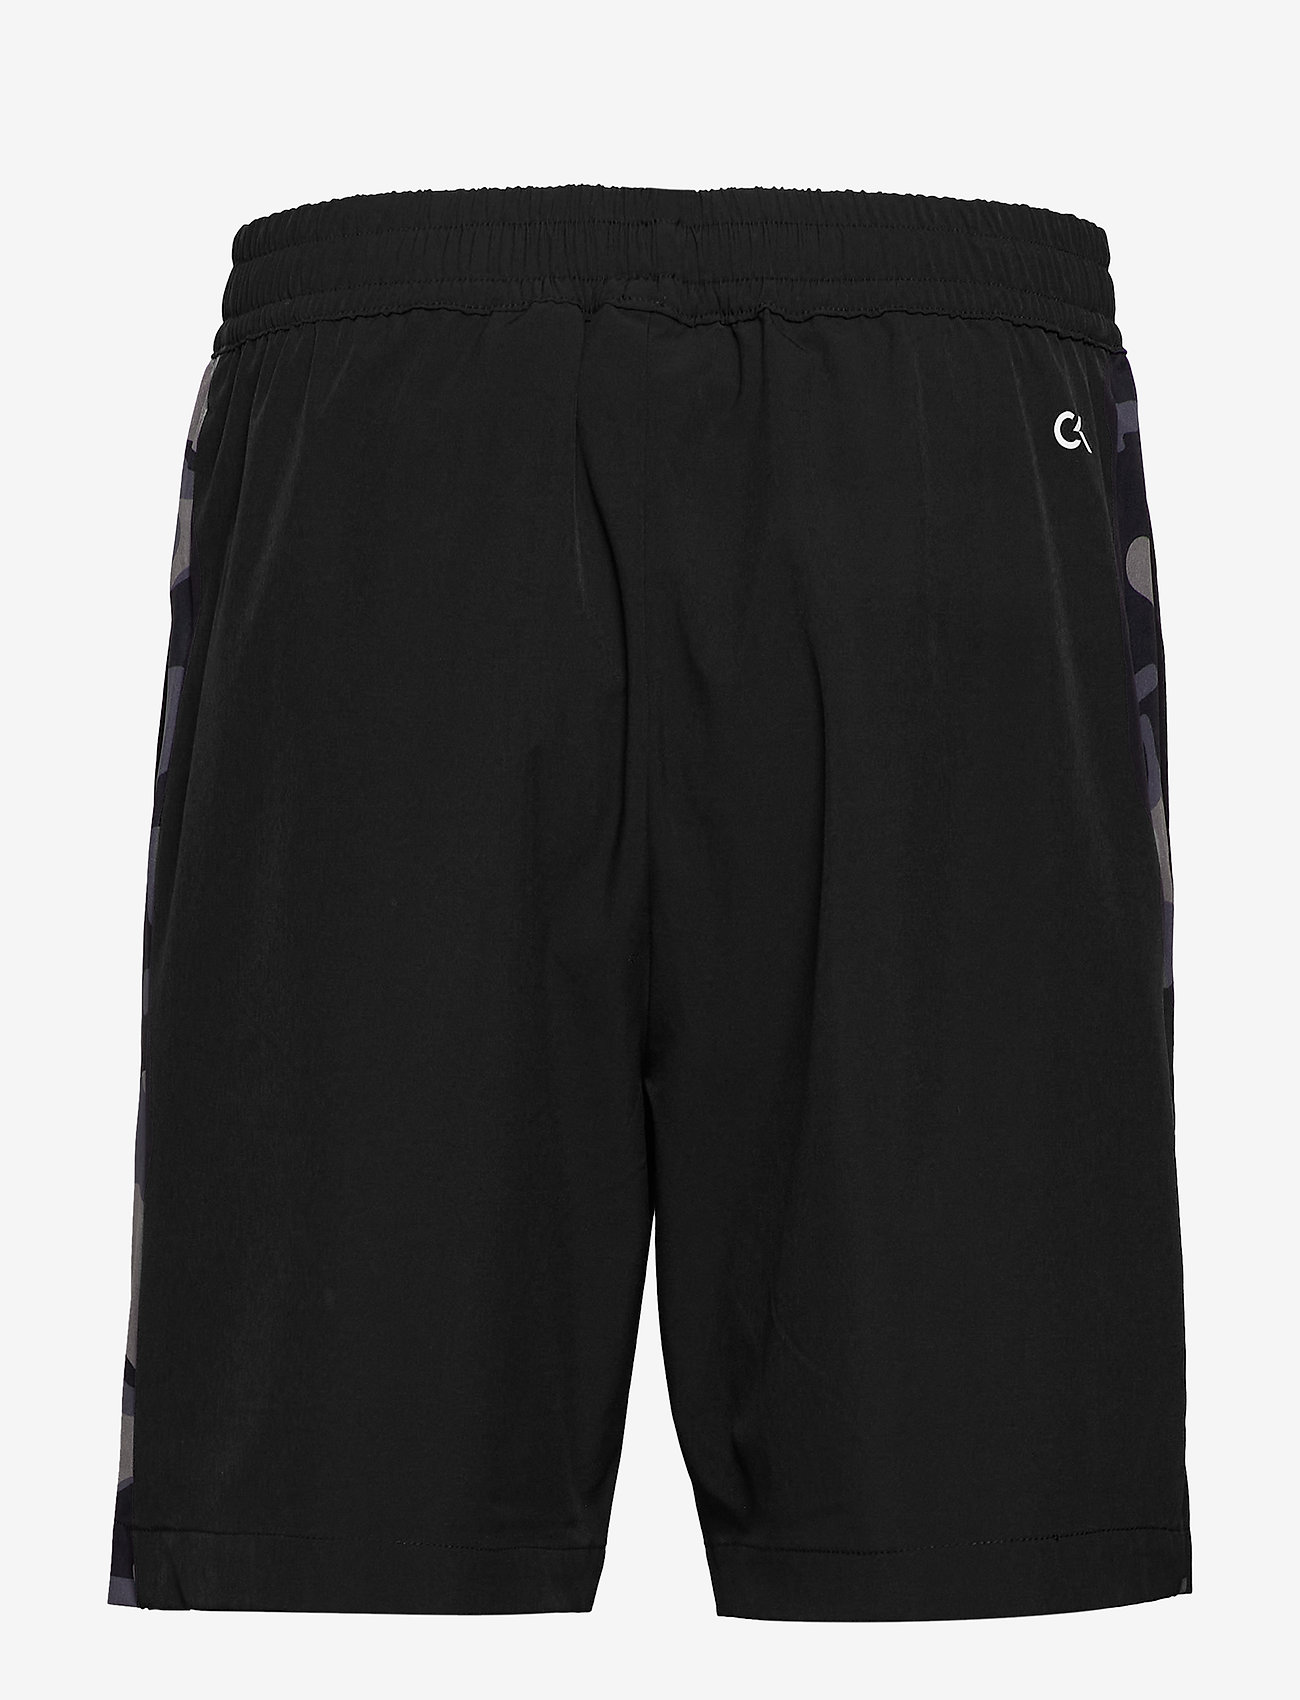 "Calvin Klein Performance - Camo 7"" Woven Shorts - casual shorts - ck black camo - 1"